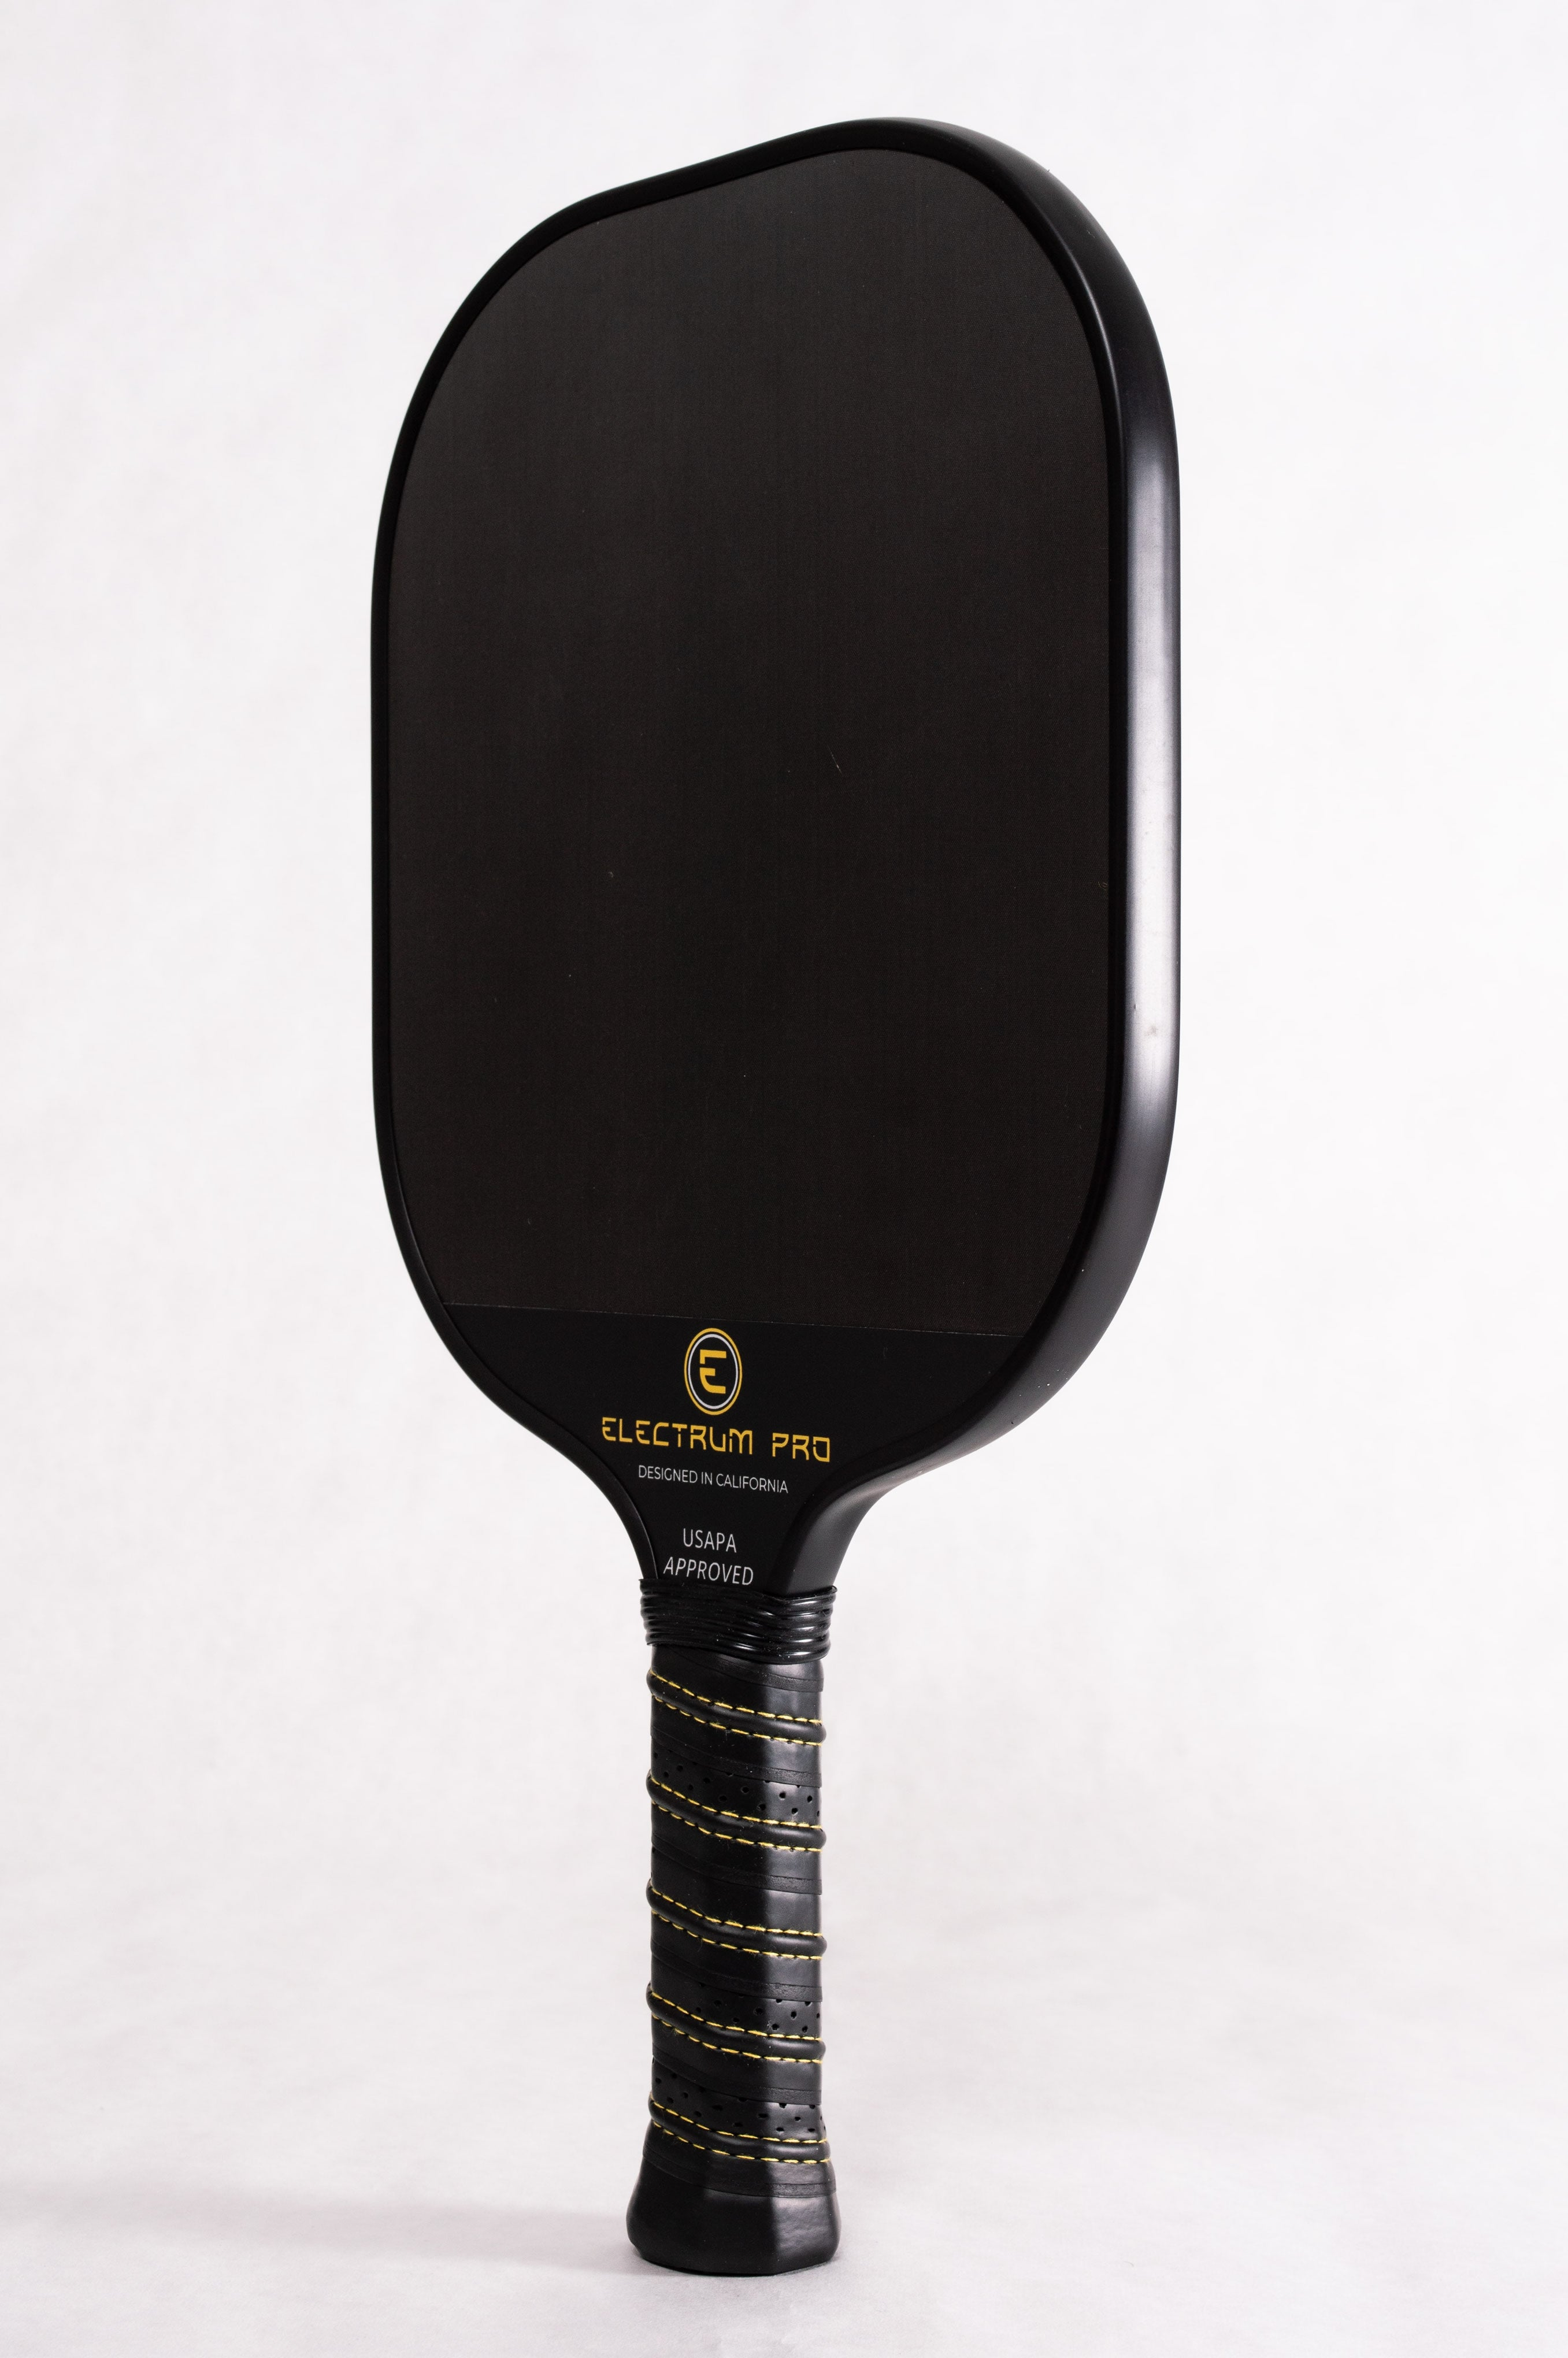 Electrum Pro Pickleball Paddle from a Profile Perspective